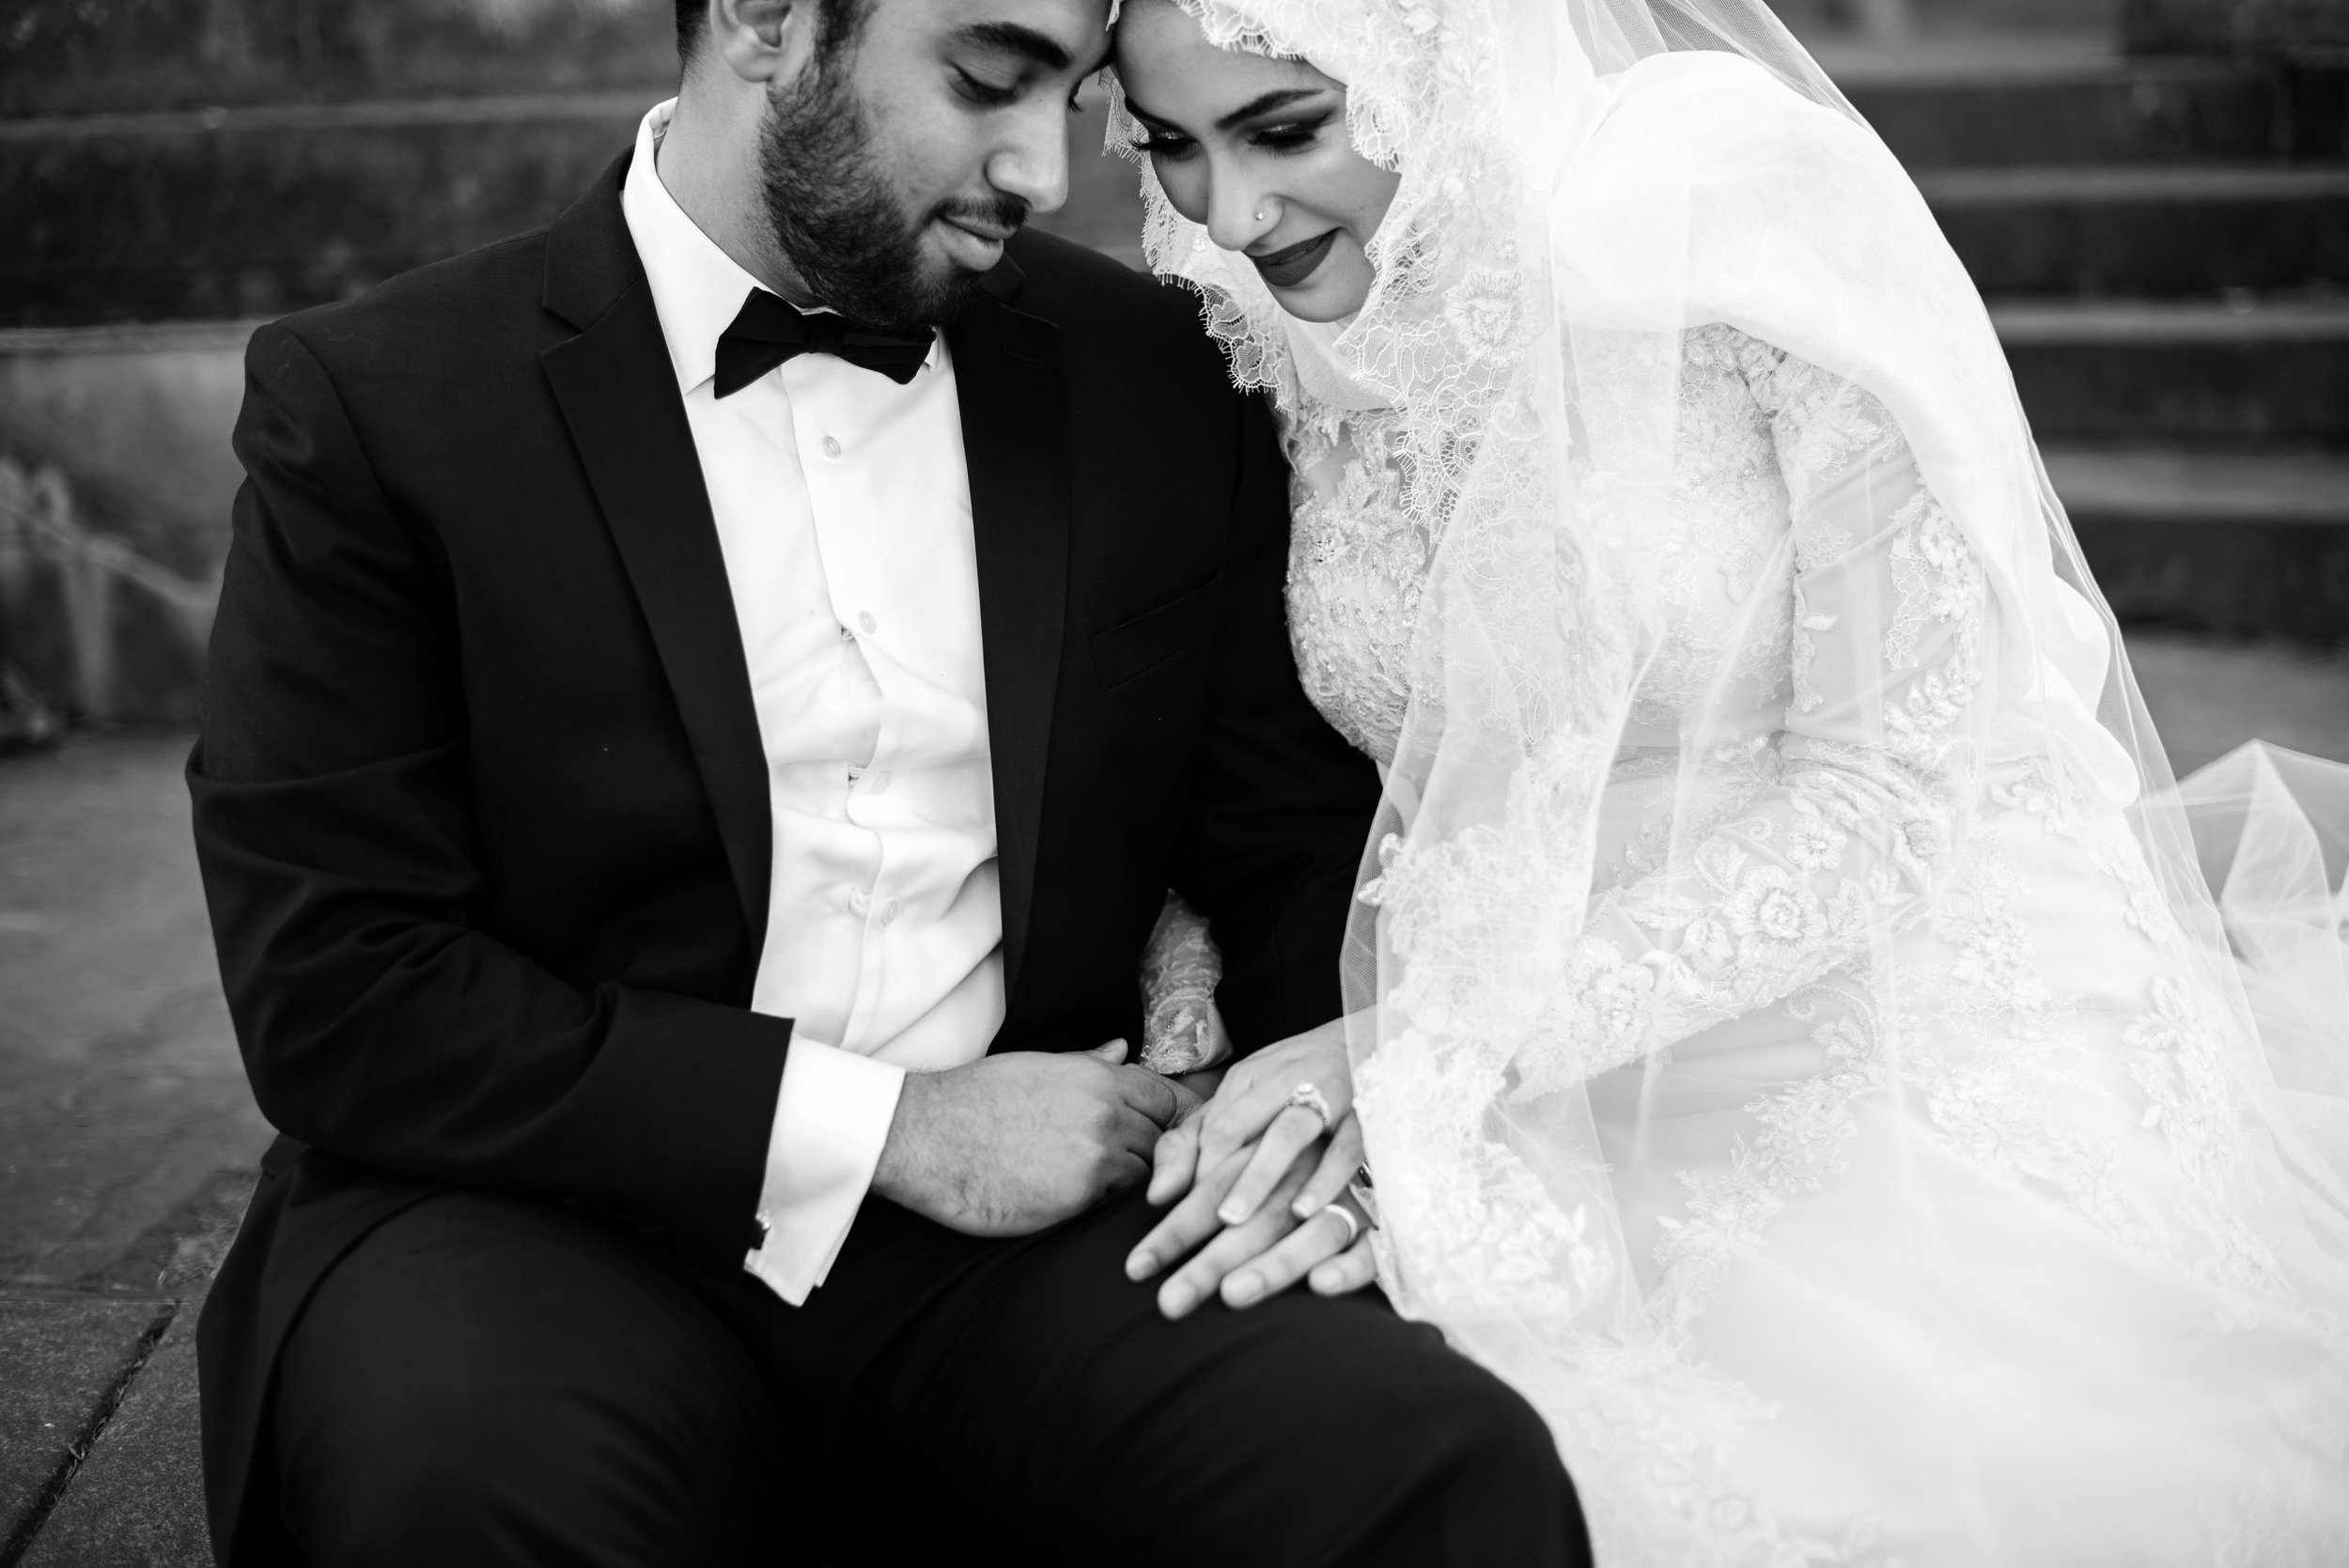 Sarah+Abdelaziz_Married_327.jpg